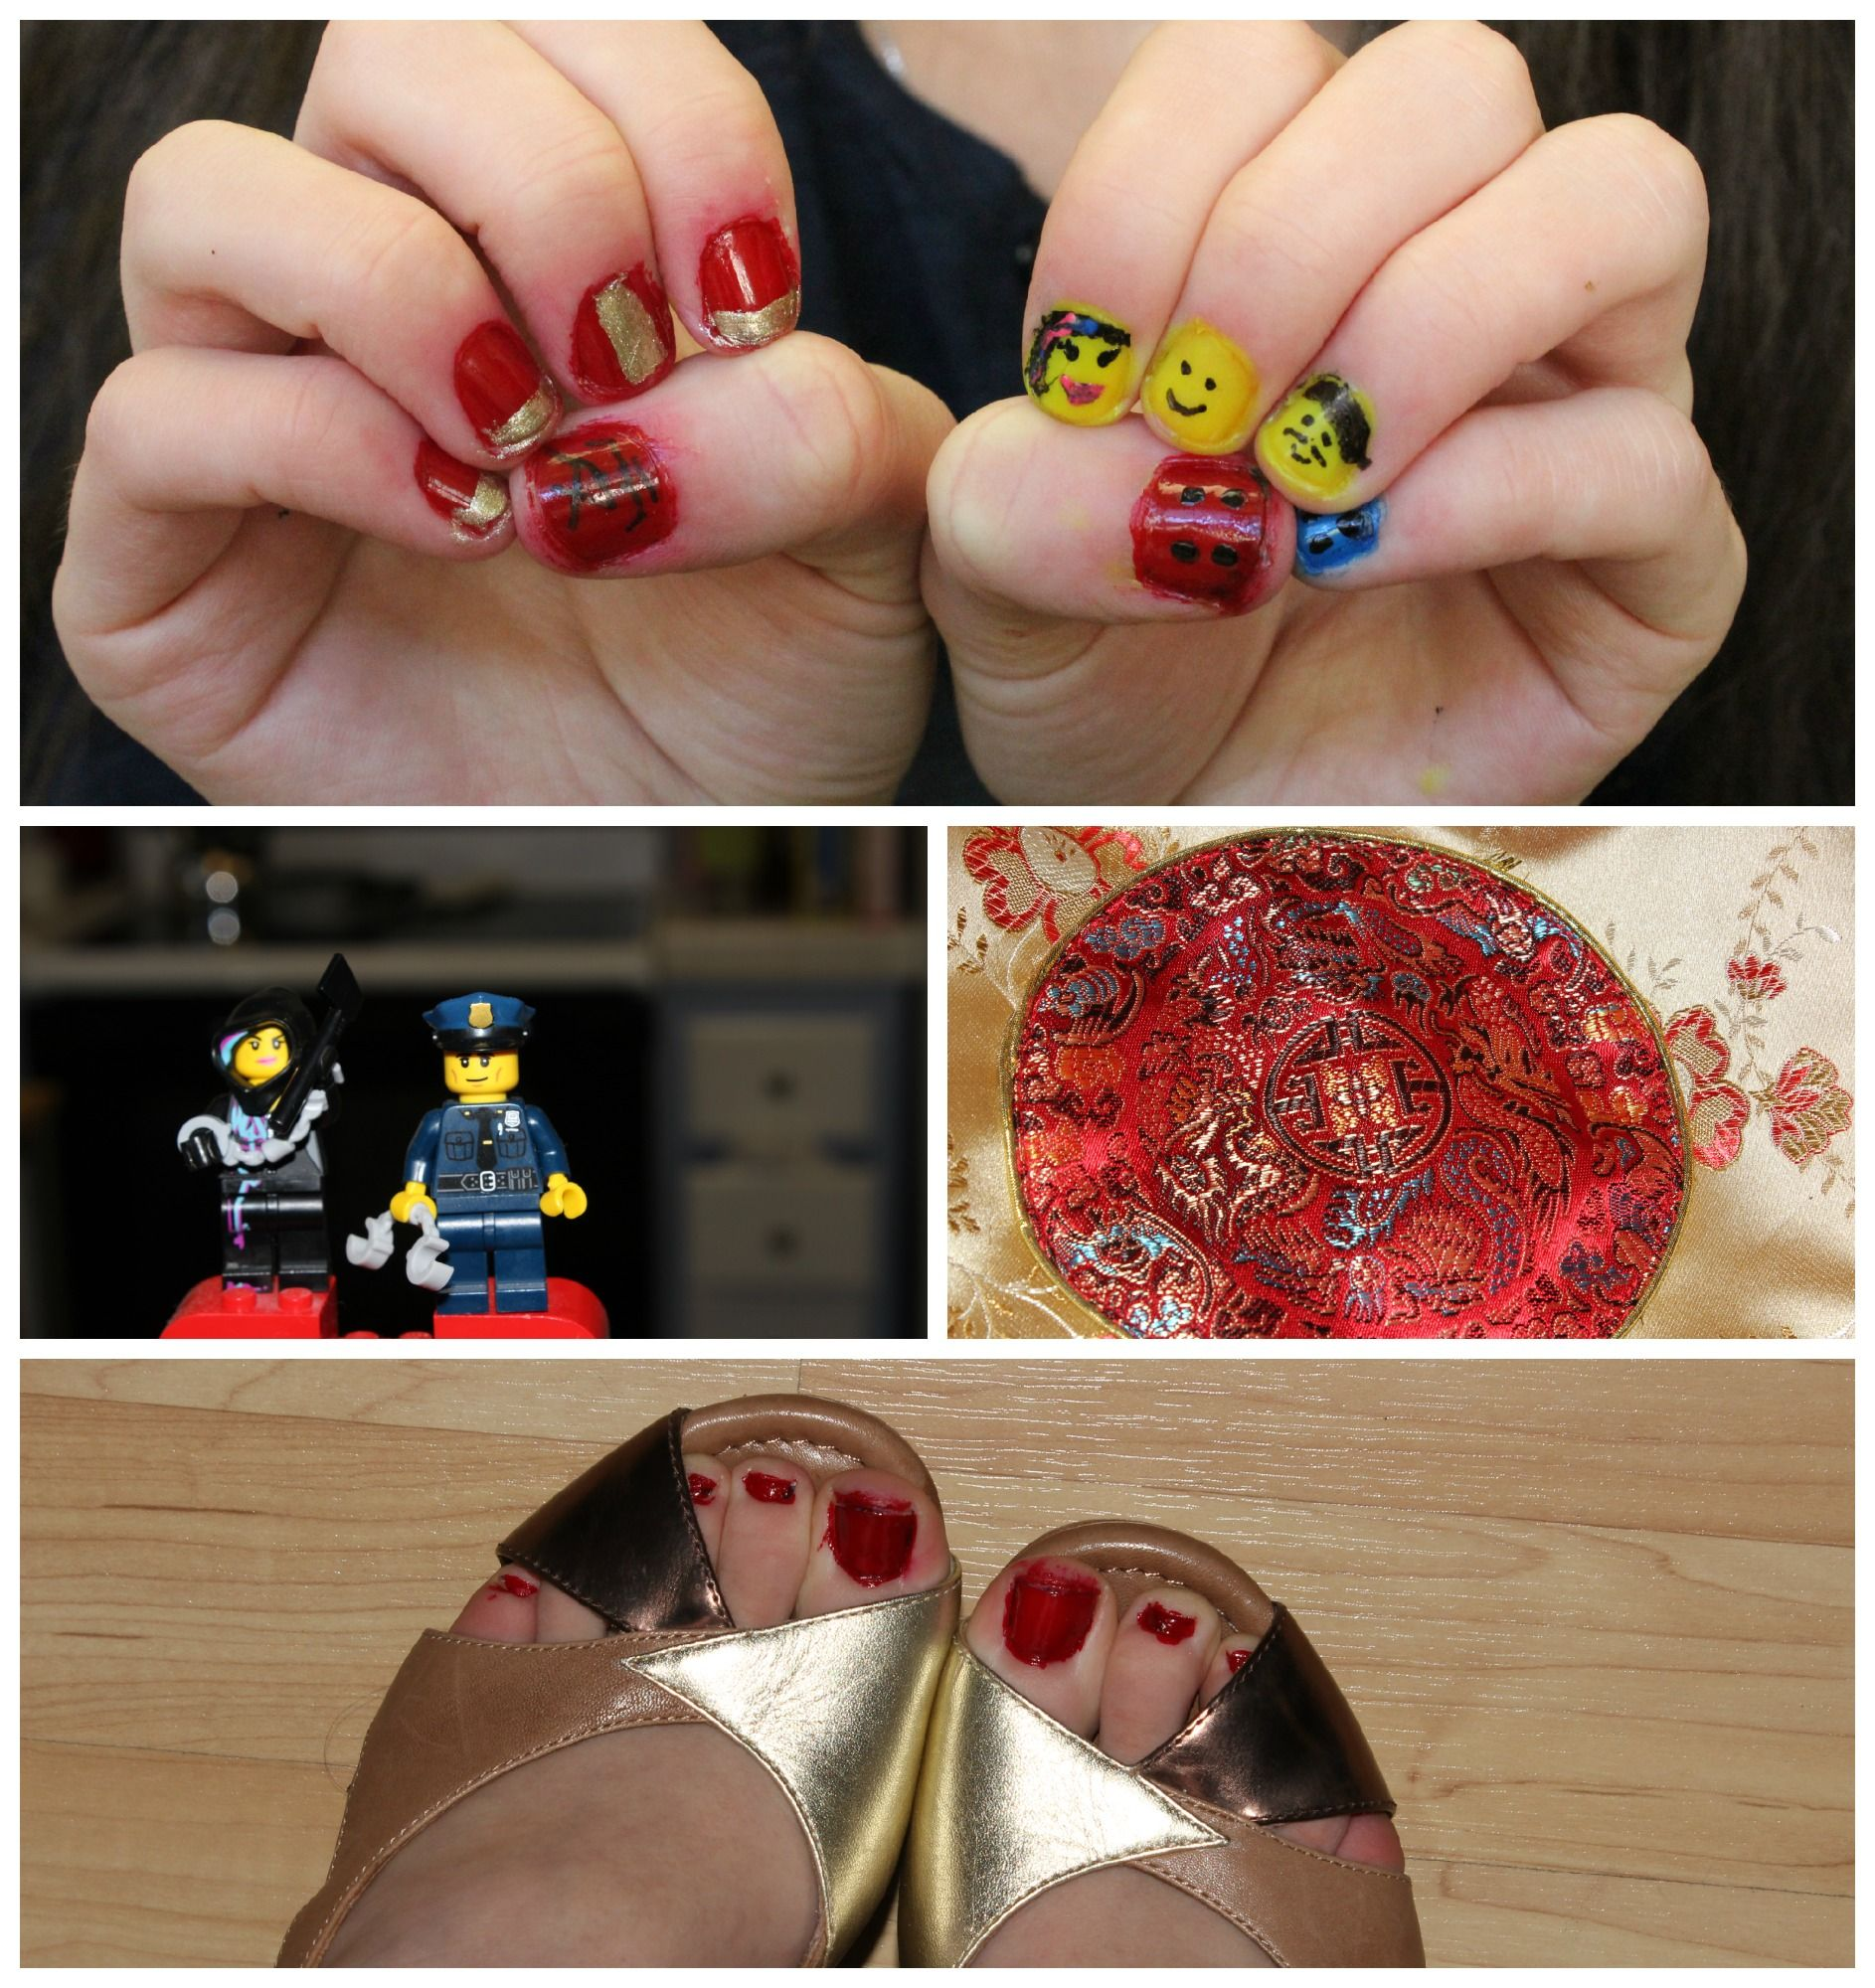 Lego Nailschinese New Year Impossible Nail Art I Will Never Do